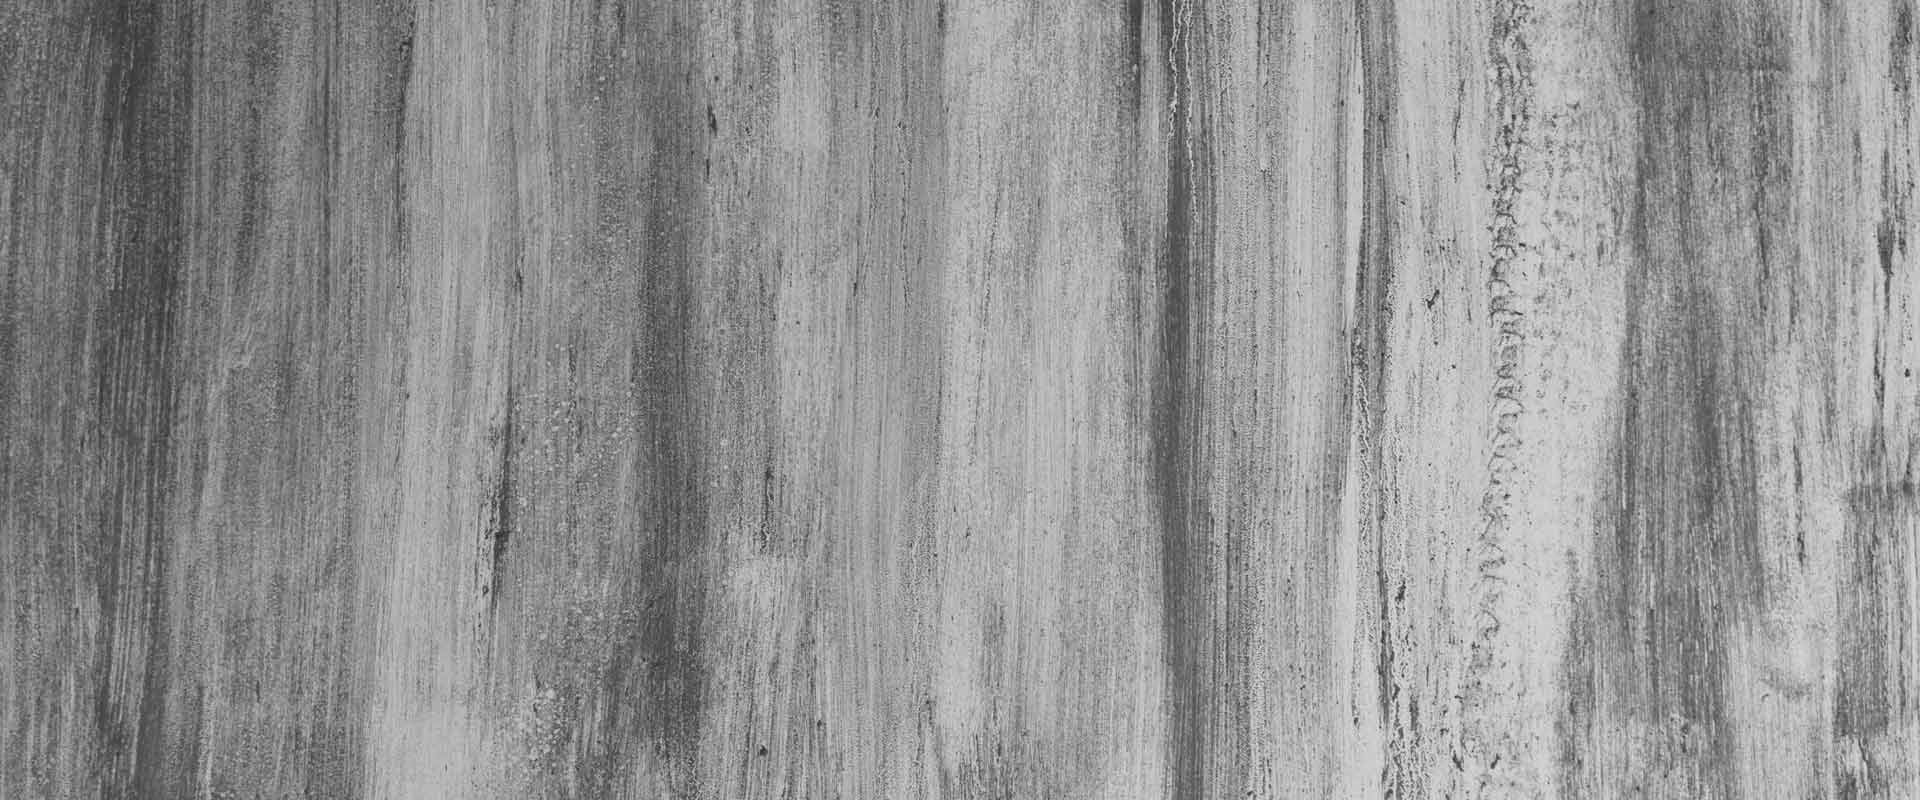 Wood Background CJWork